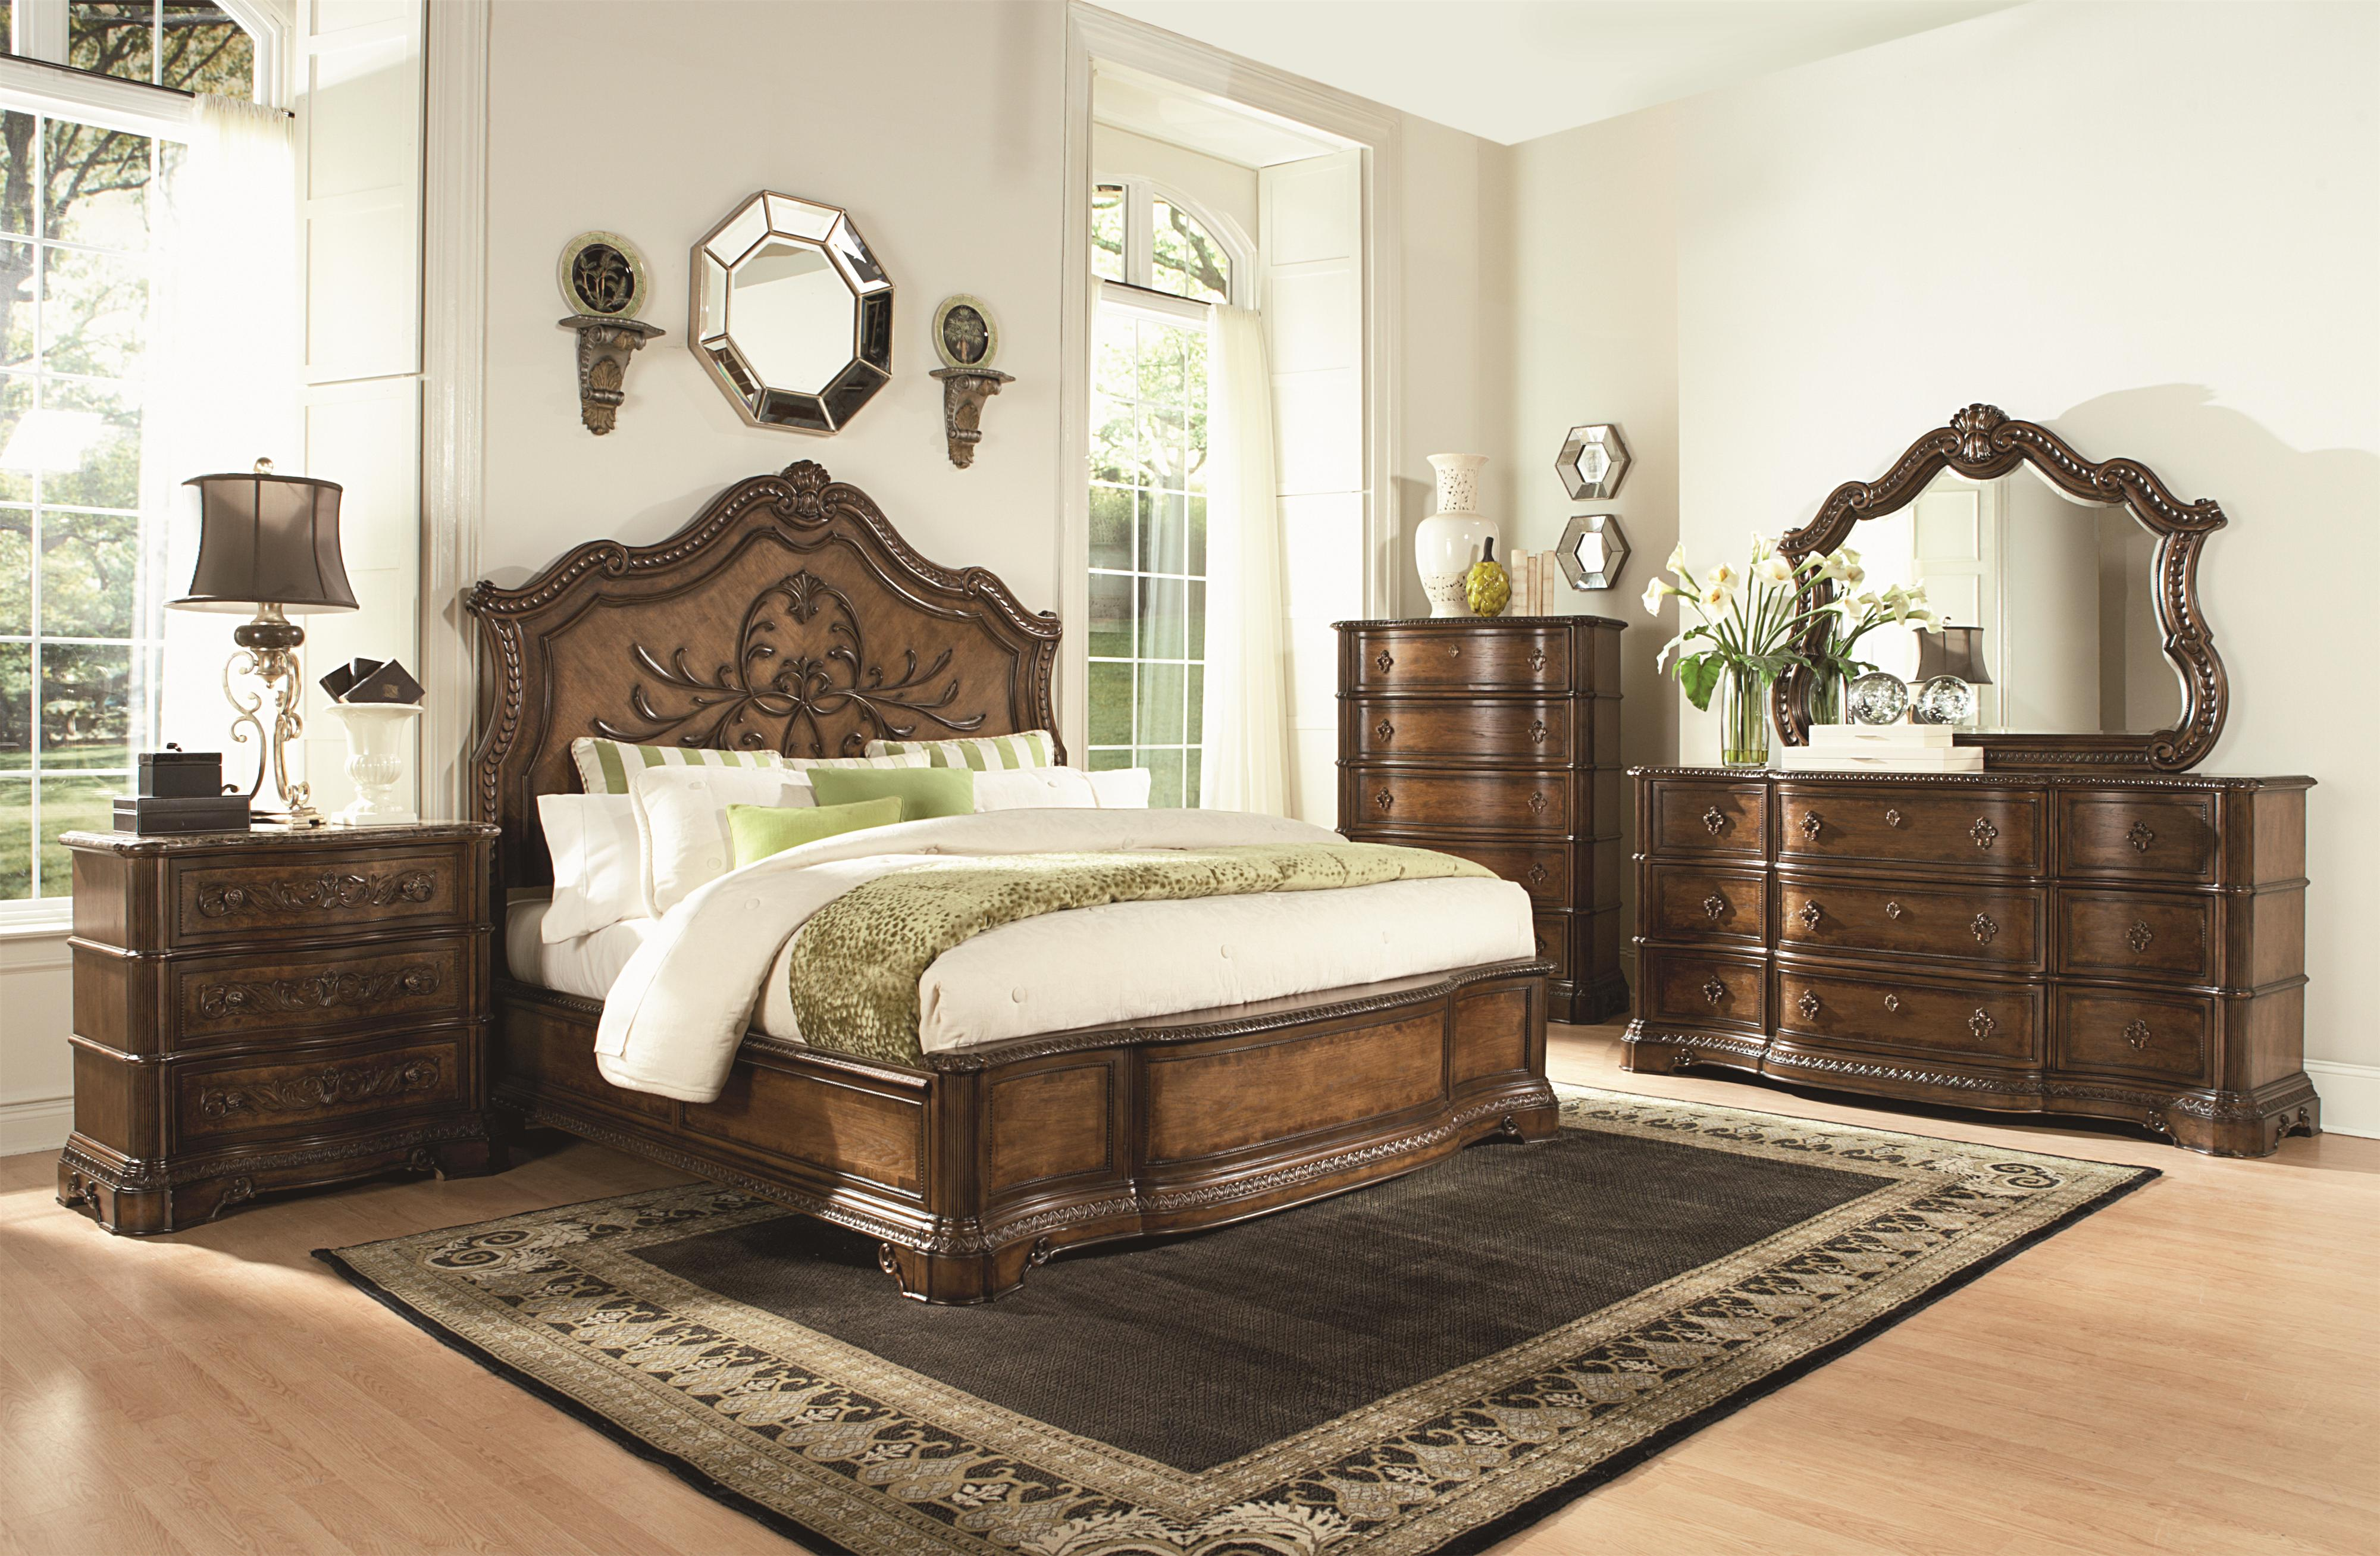 Pemberleigh king panel bed with wood carved details by for Furniture collection